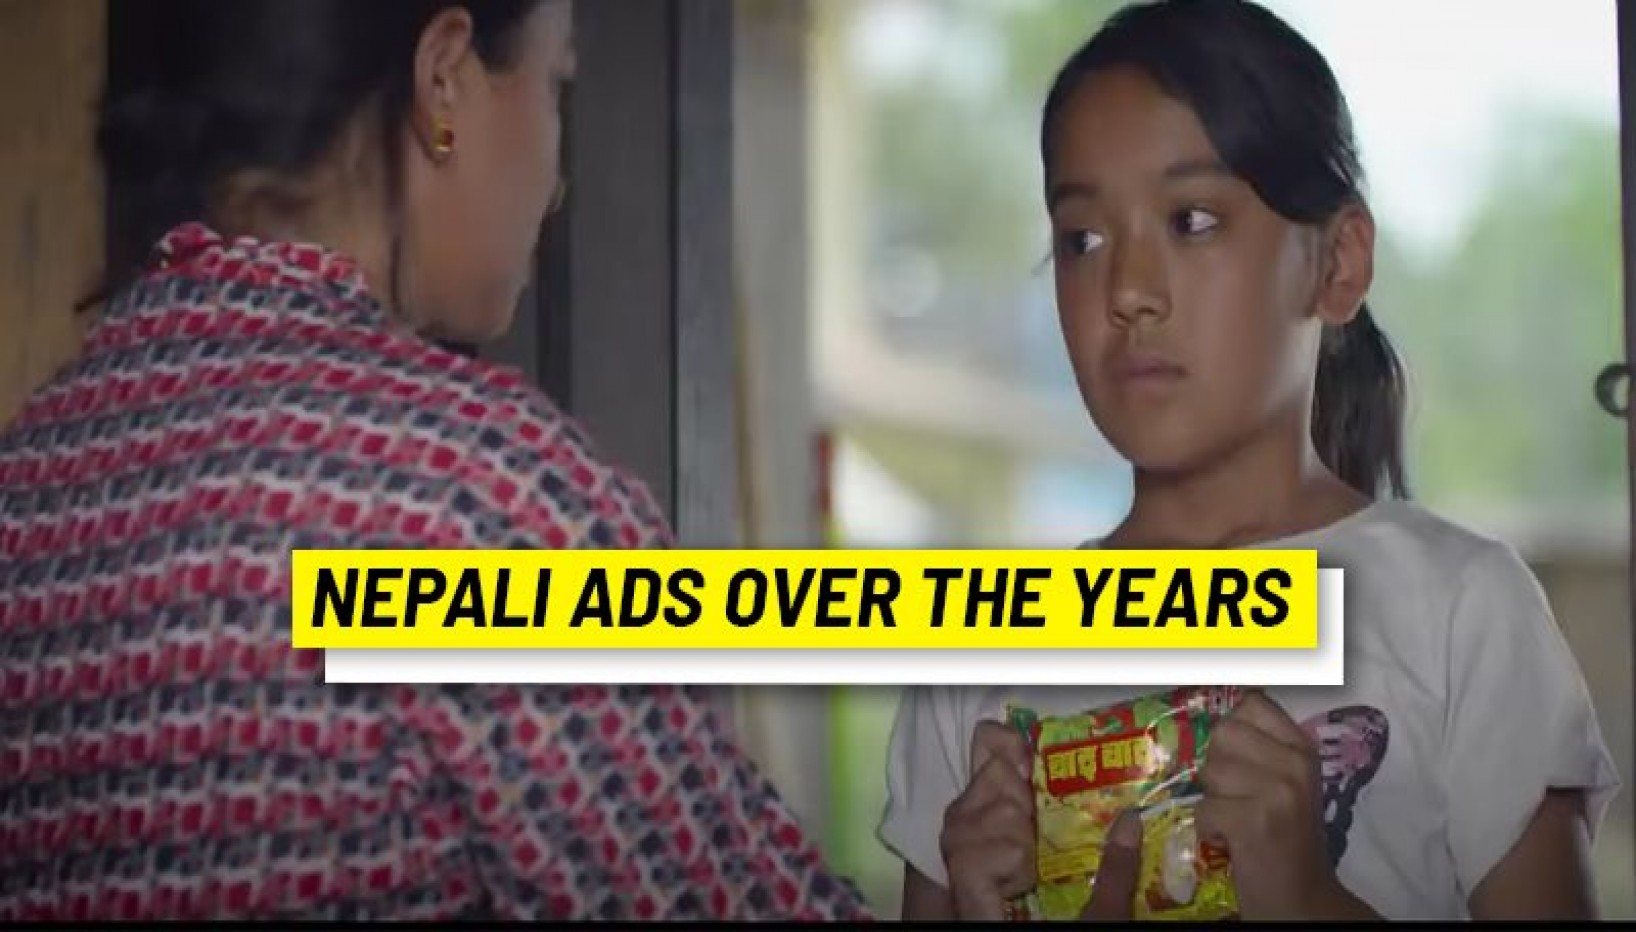 How Have Nepali Ads Changed Over The Years? Here's What Ads These Days Are Like